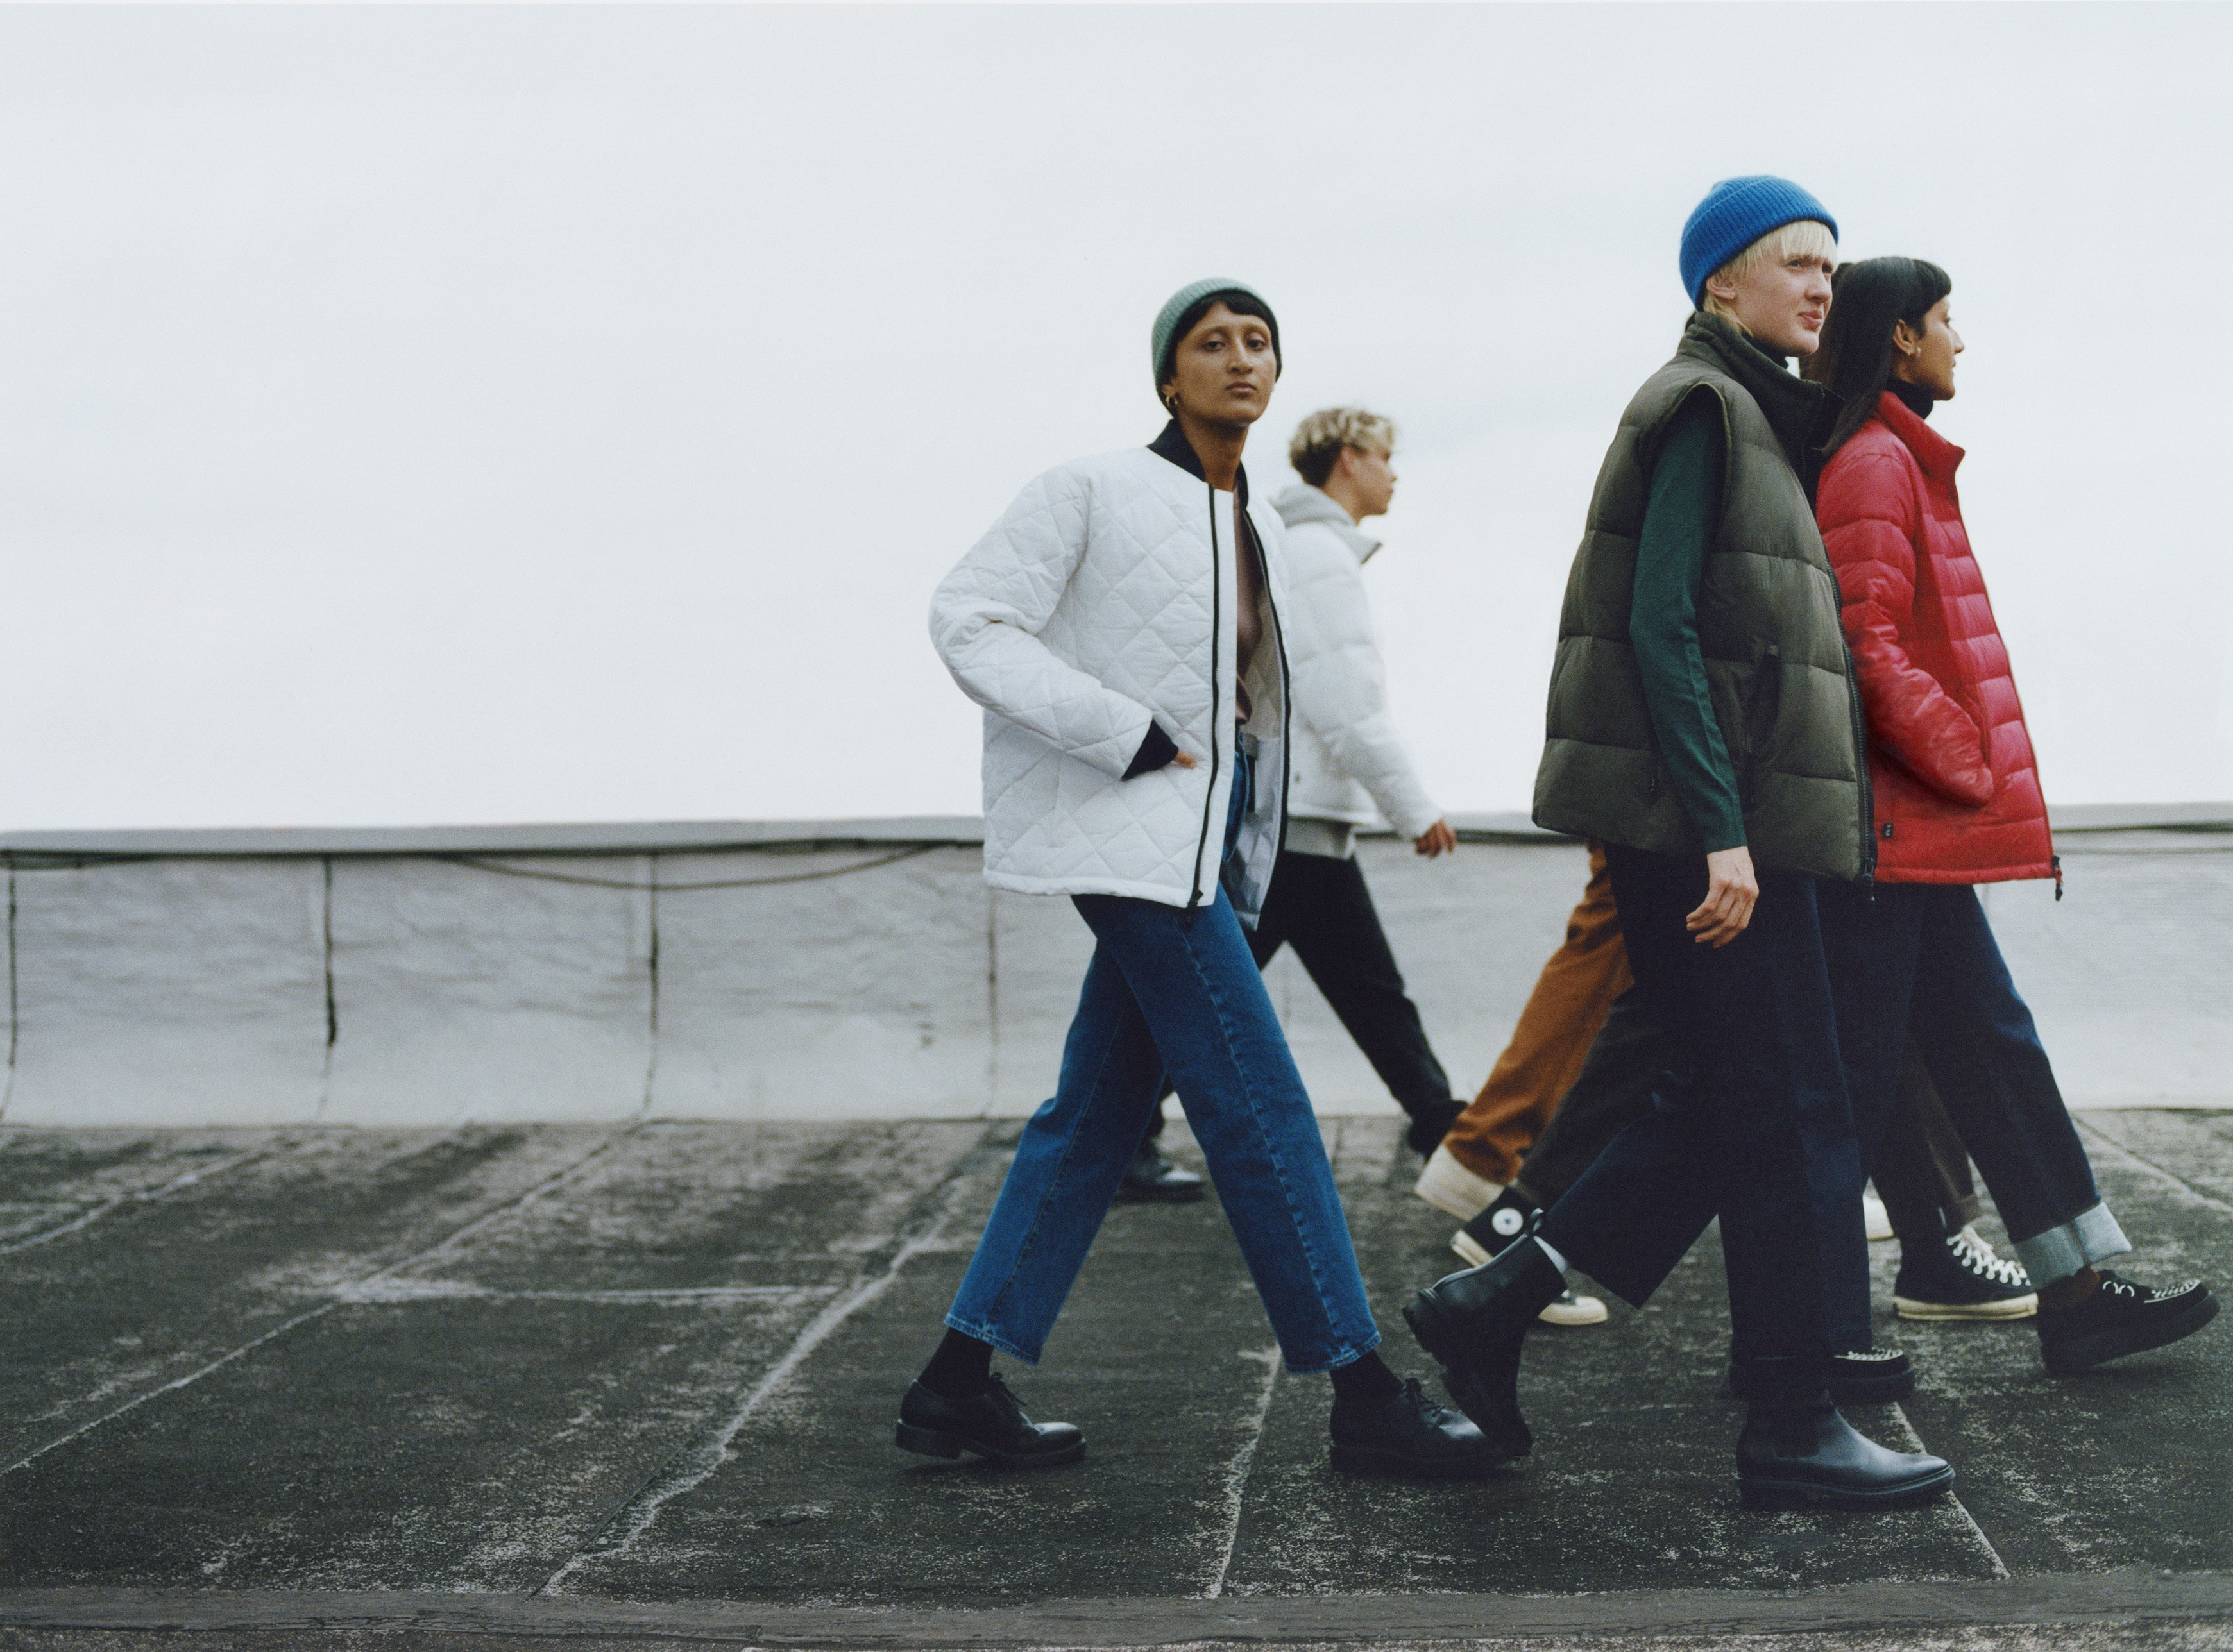 A gang of young people wearing large colorful jackets walking around a cityscape